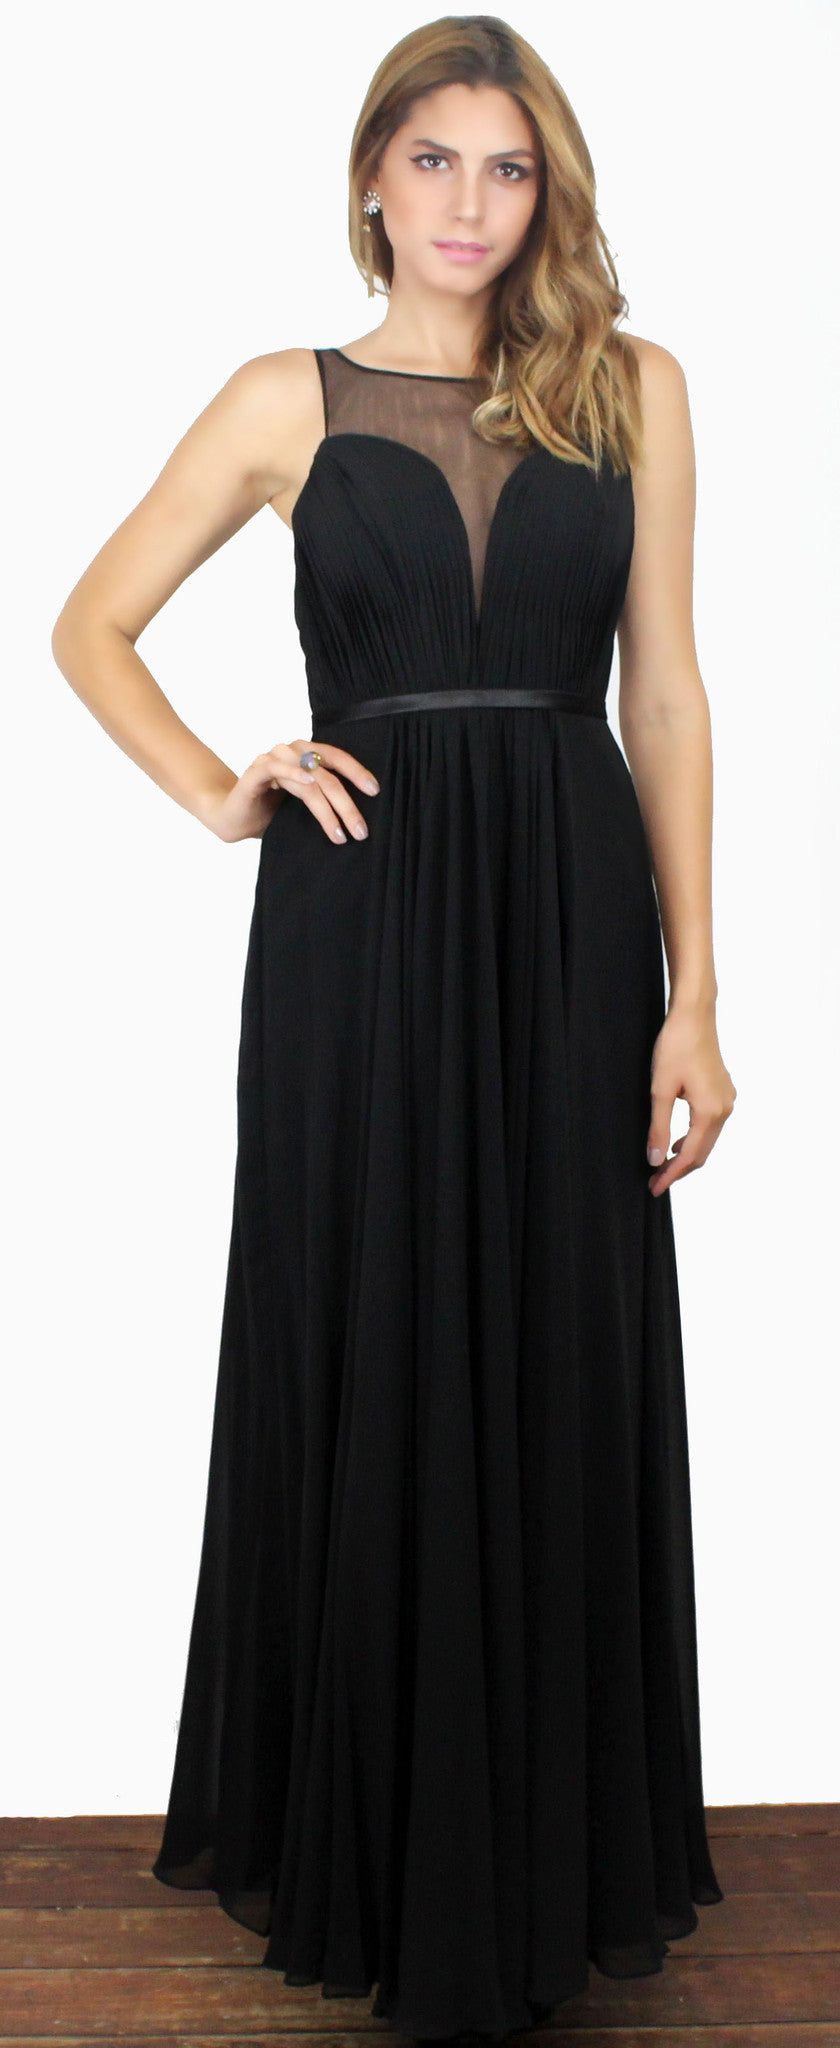 Looking Glass Black Draped Gown